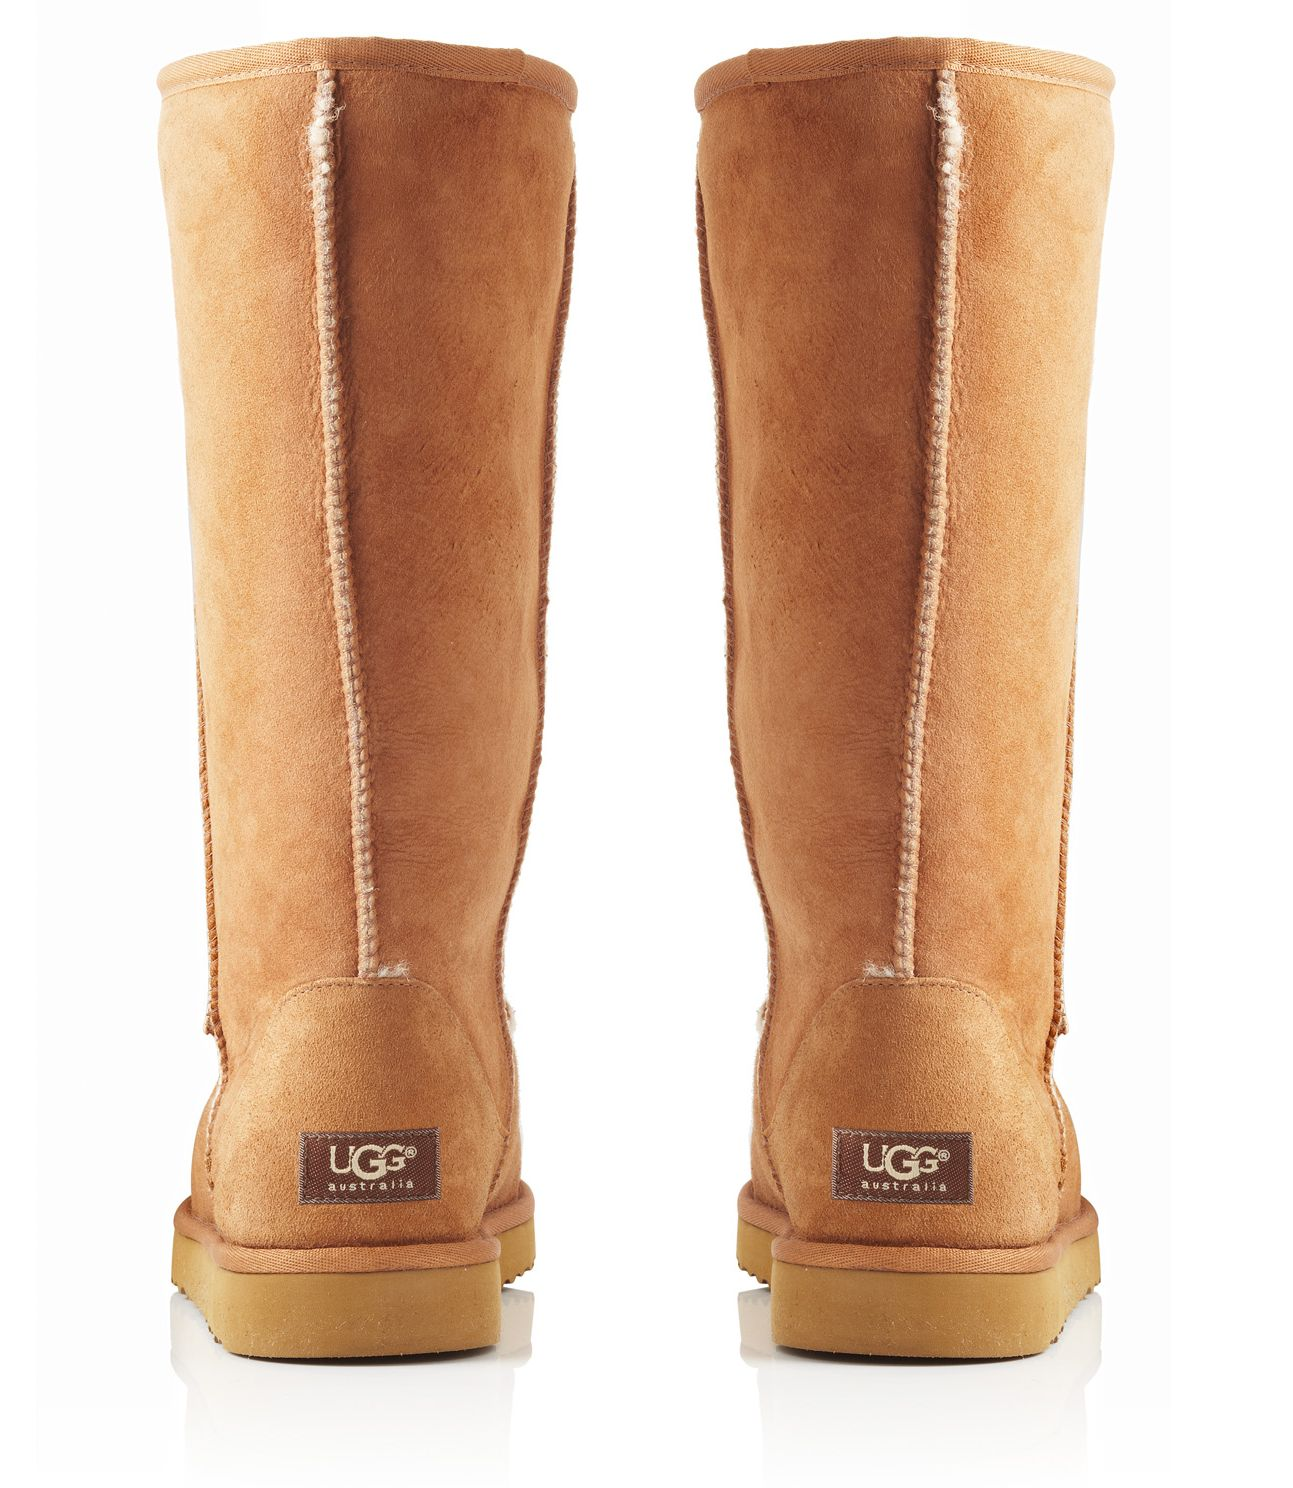 uggs for less classic ugg boots tall ugg boots sale. Black Bedroom Furniture Sets. Home Design Ideas